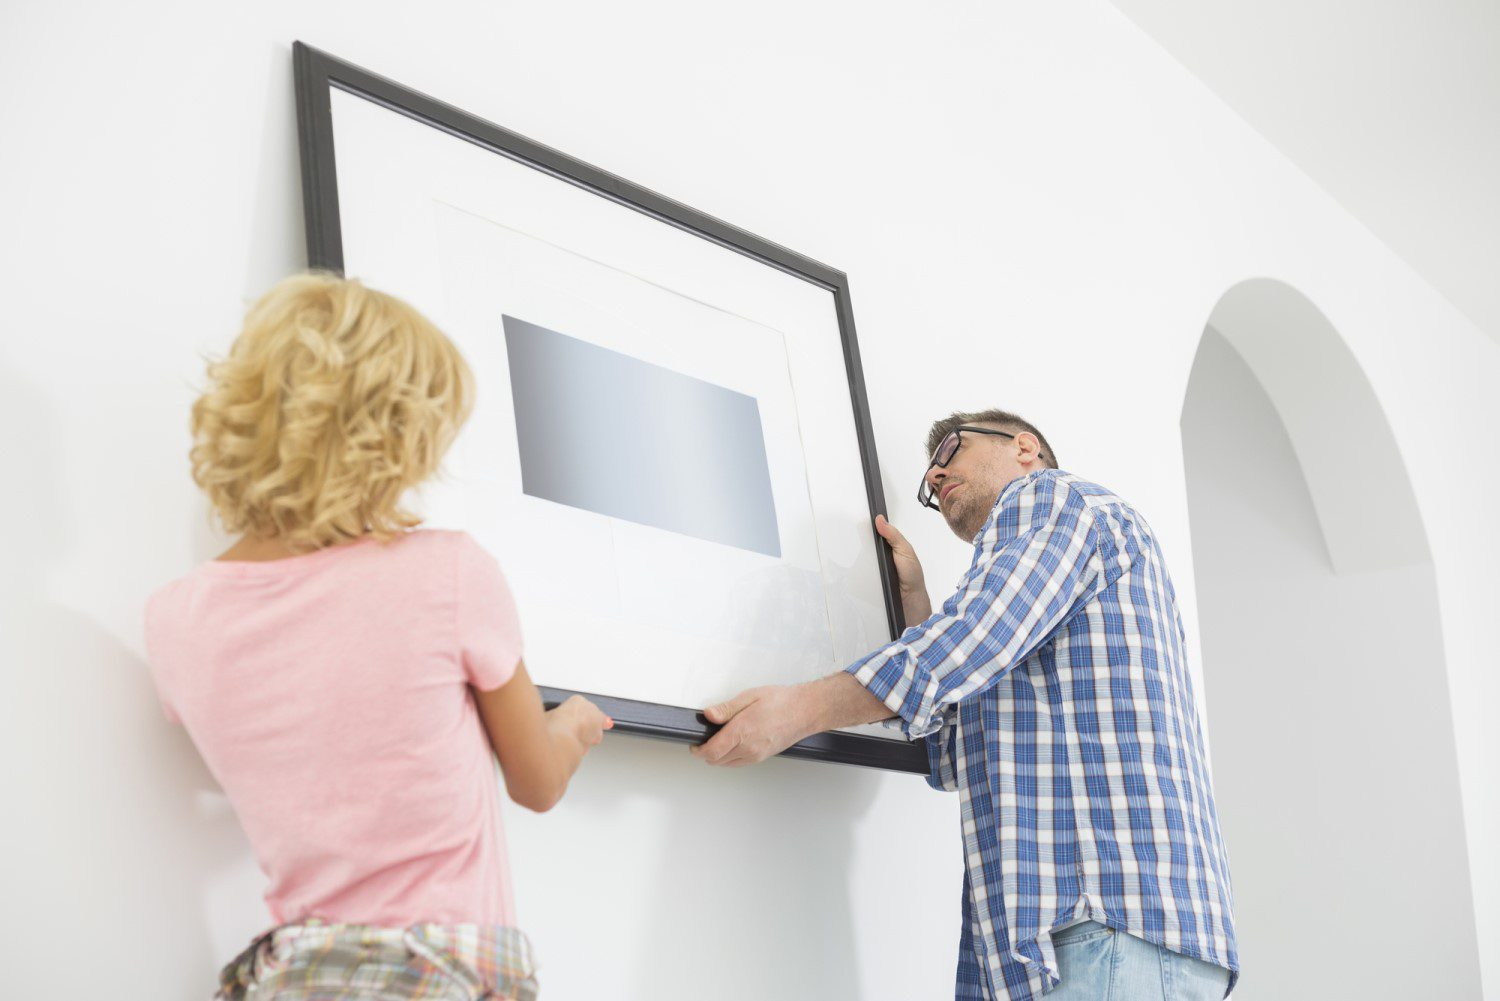 A couple attempting to hang a picture on a white wall